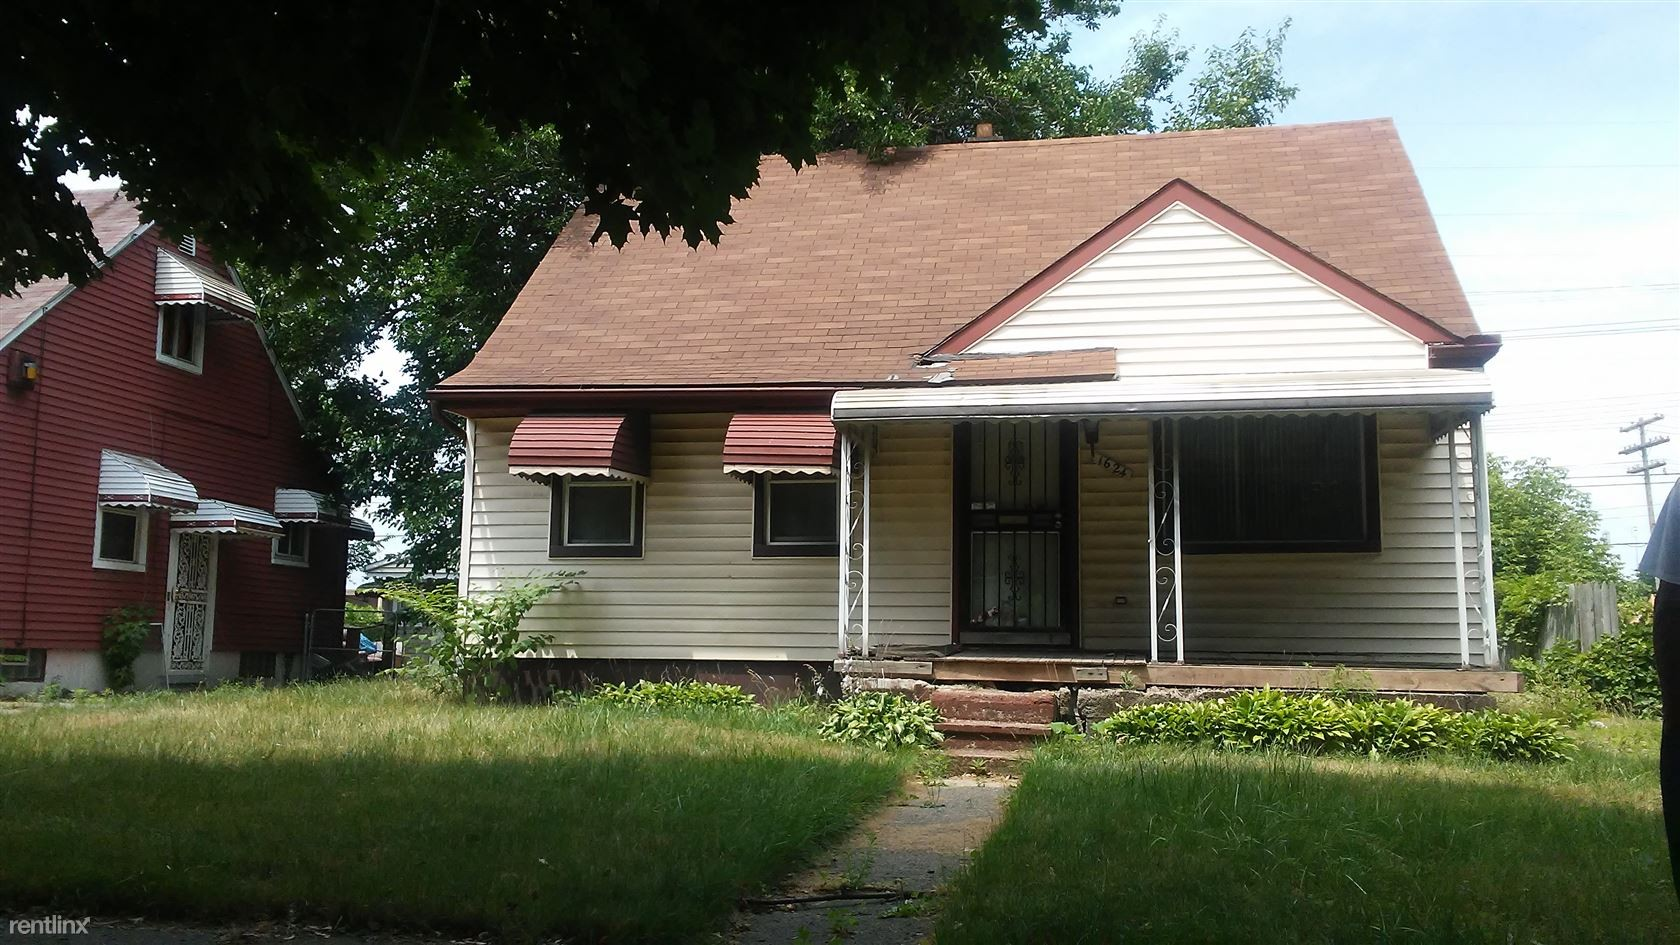 1624 S Liebold St Detroit Mi 48217 3 Bedroom Apartment For Rent Padmapper